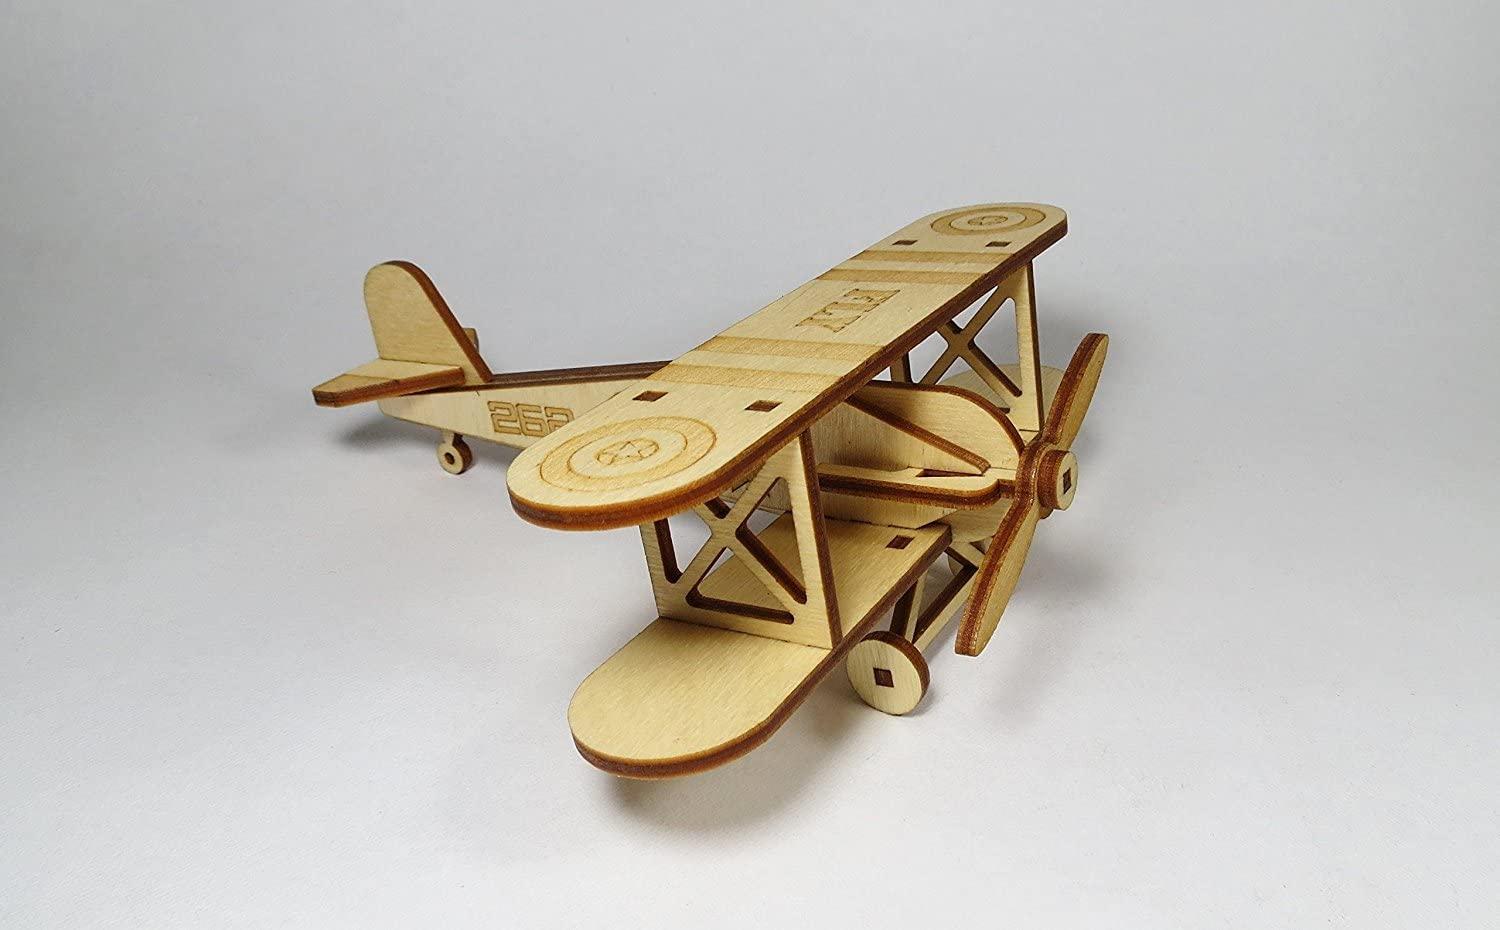 StonKraft Wooden 3D Glider Aeroplane Retro Plane Model - Home Decor, Construction Toy, Modeling Kit, School Project - Easy to Assemble